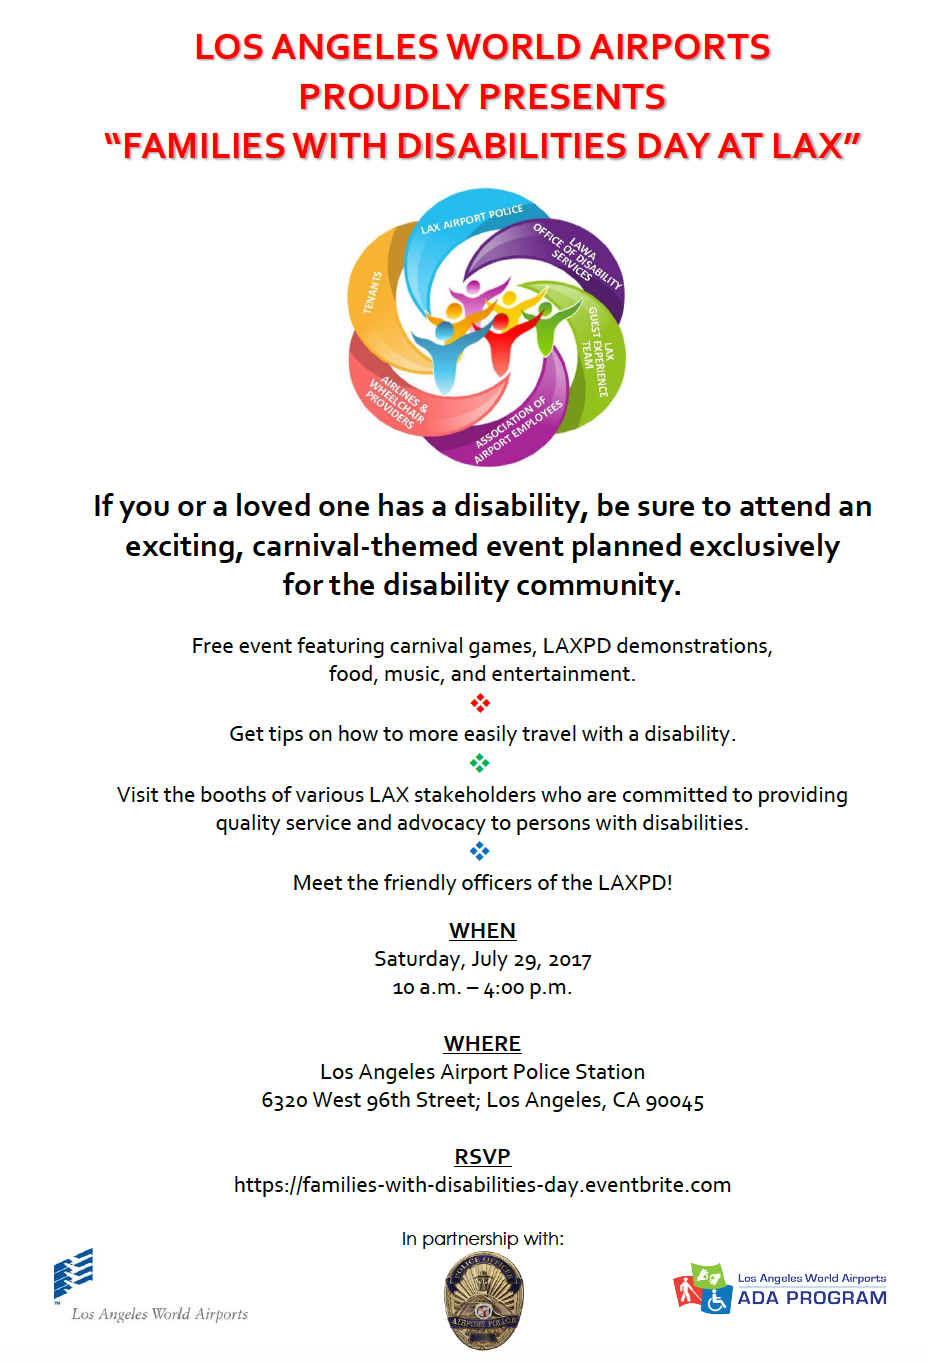 Families With Disabilities Day At Lax Is Being Held On Saturday, July 29,  2107 From 10 Am To 4 Pm At The Los Angeles Airport Police Station And  Is A